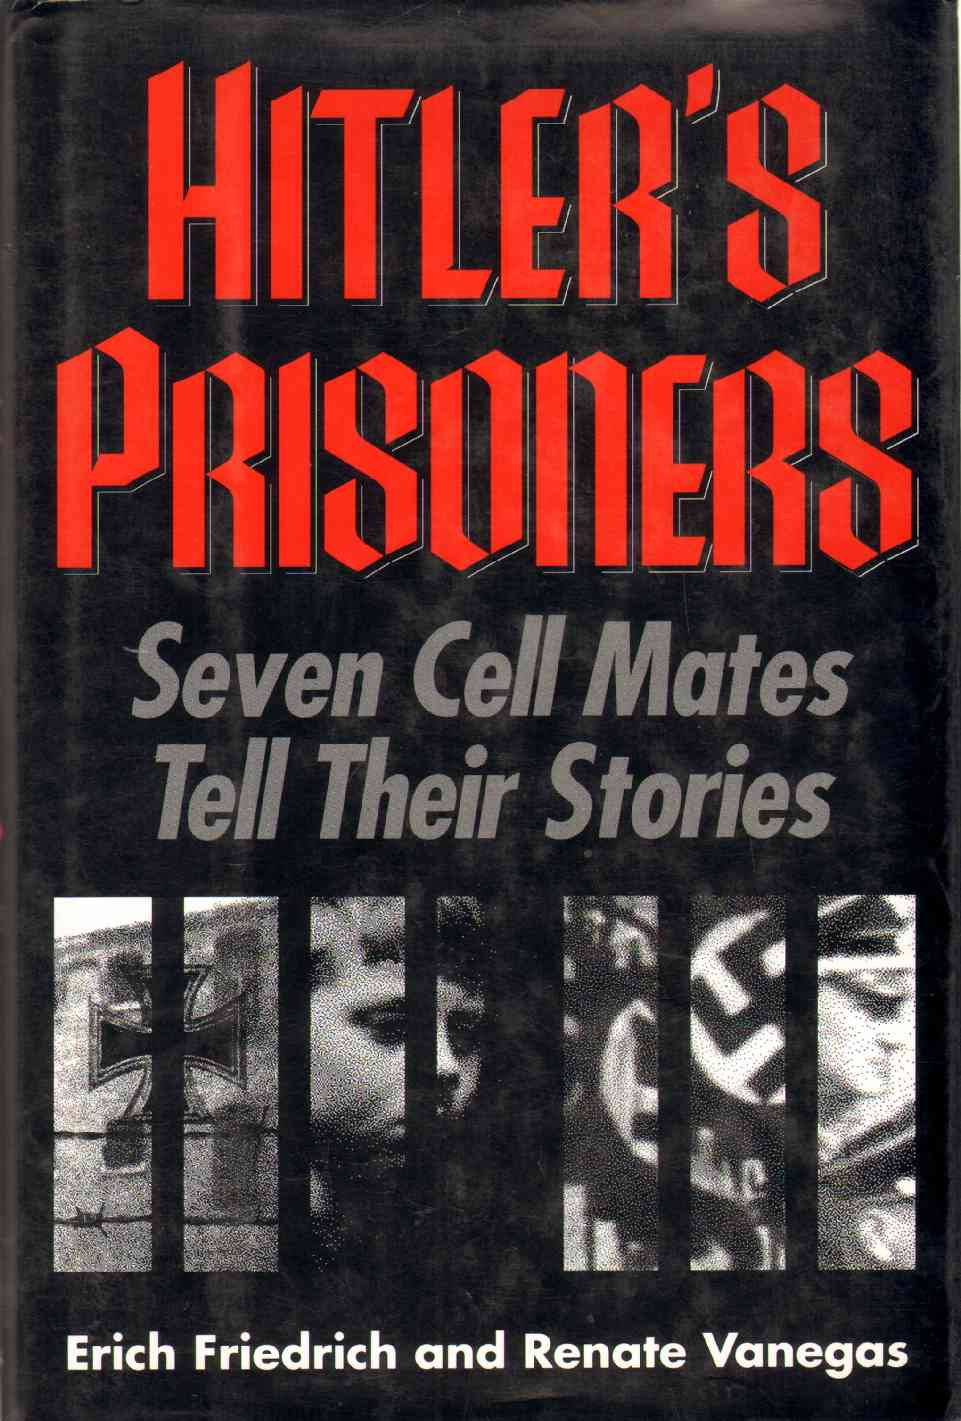 Image for HITLER'S PRISONERS Seven Cell Mates Tell Their Stories